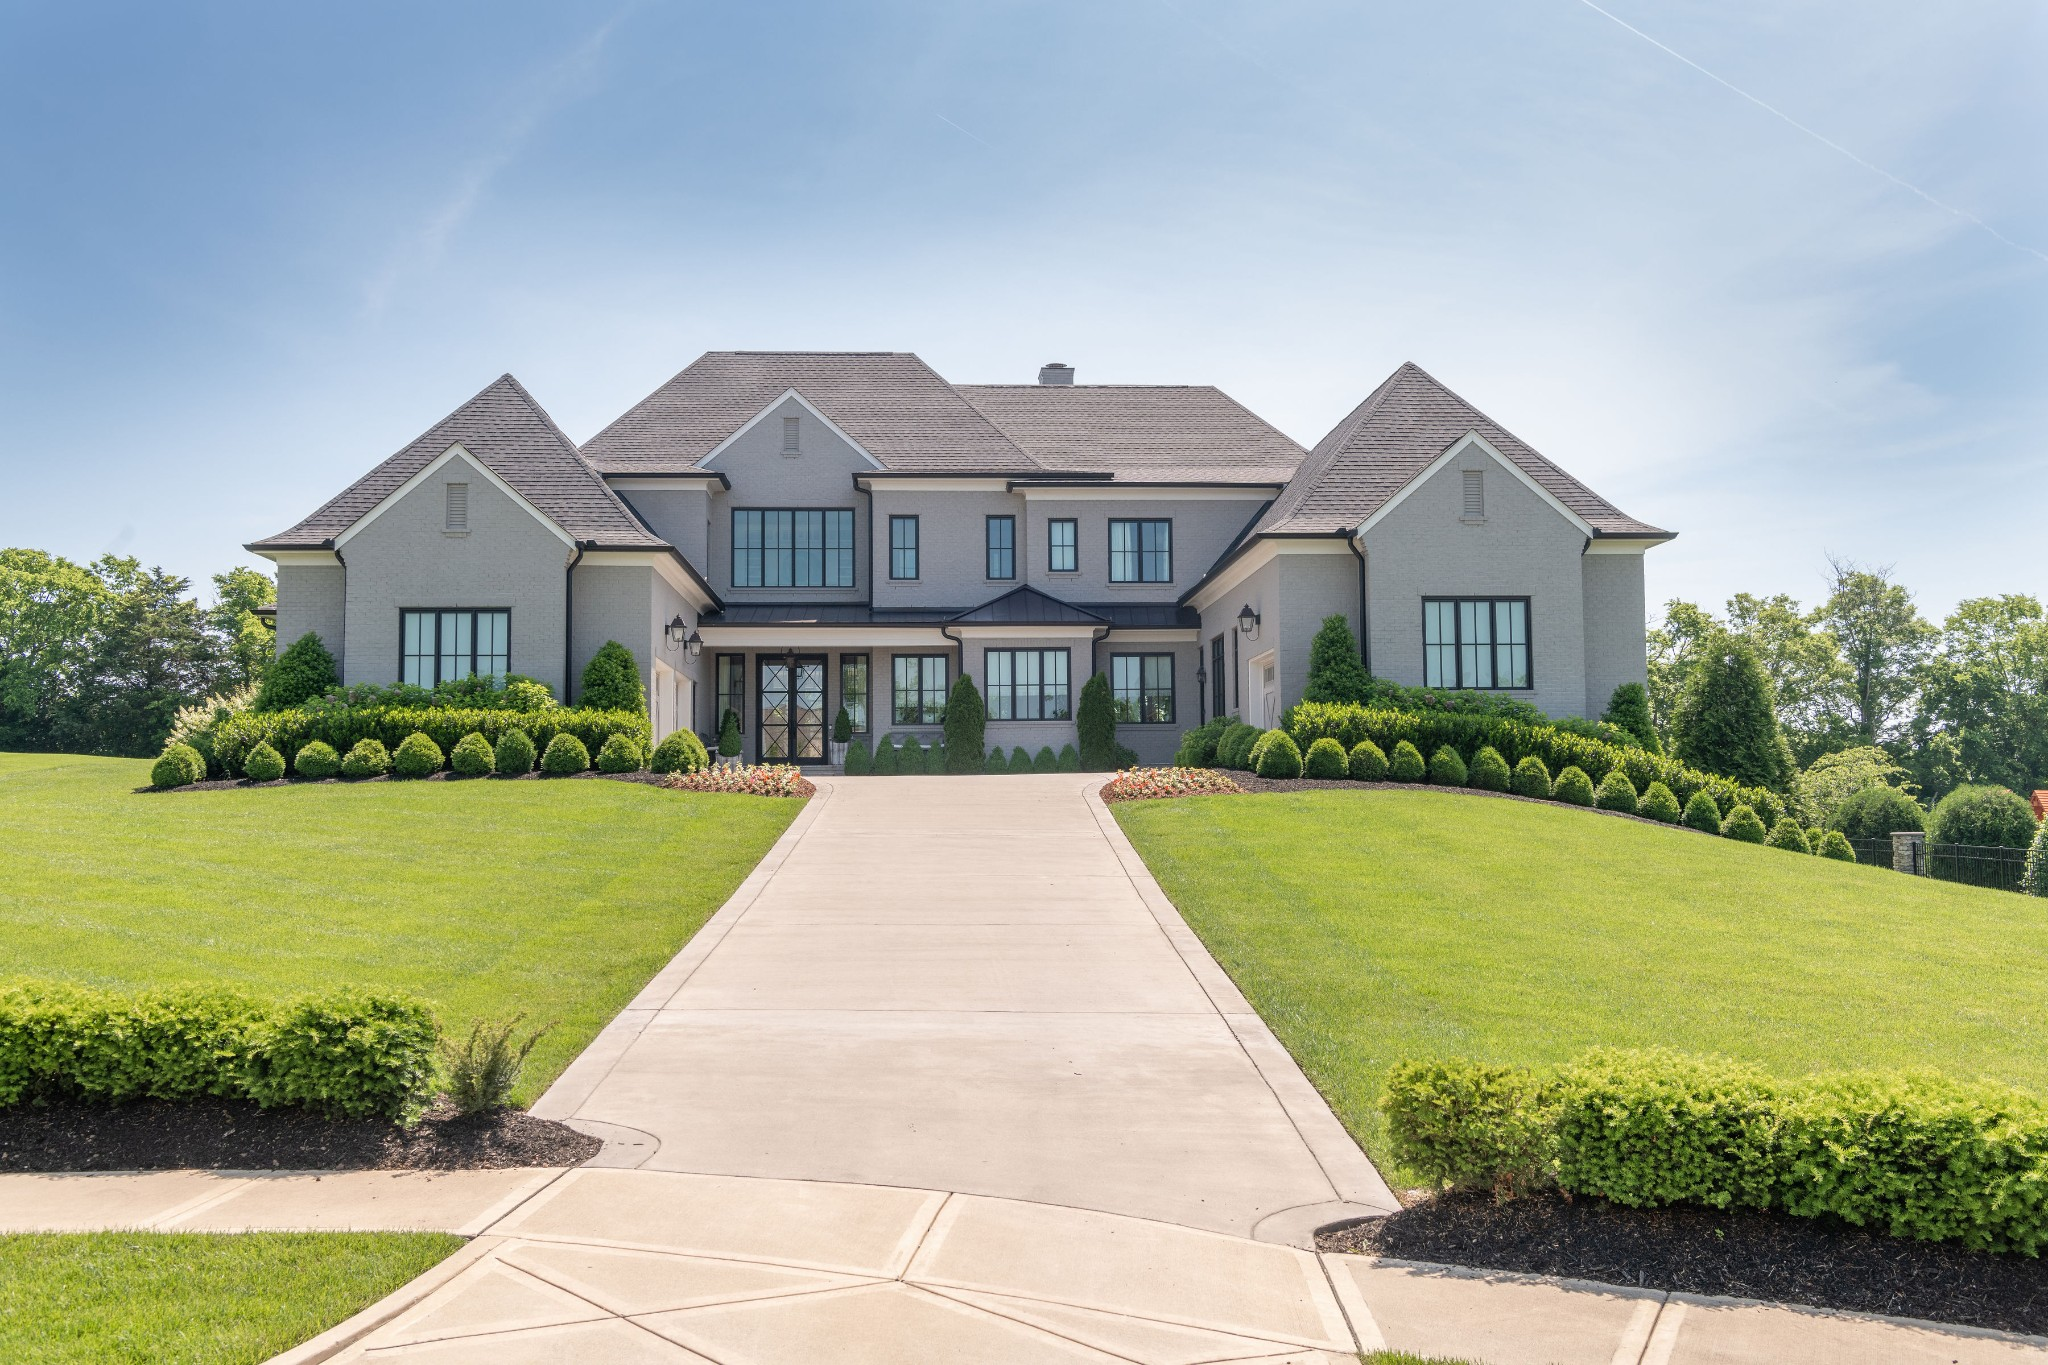 9276 Exton Ln, Brentwood, TN 37027 - Brentwood, TN real estate listing